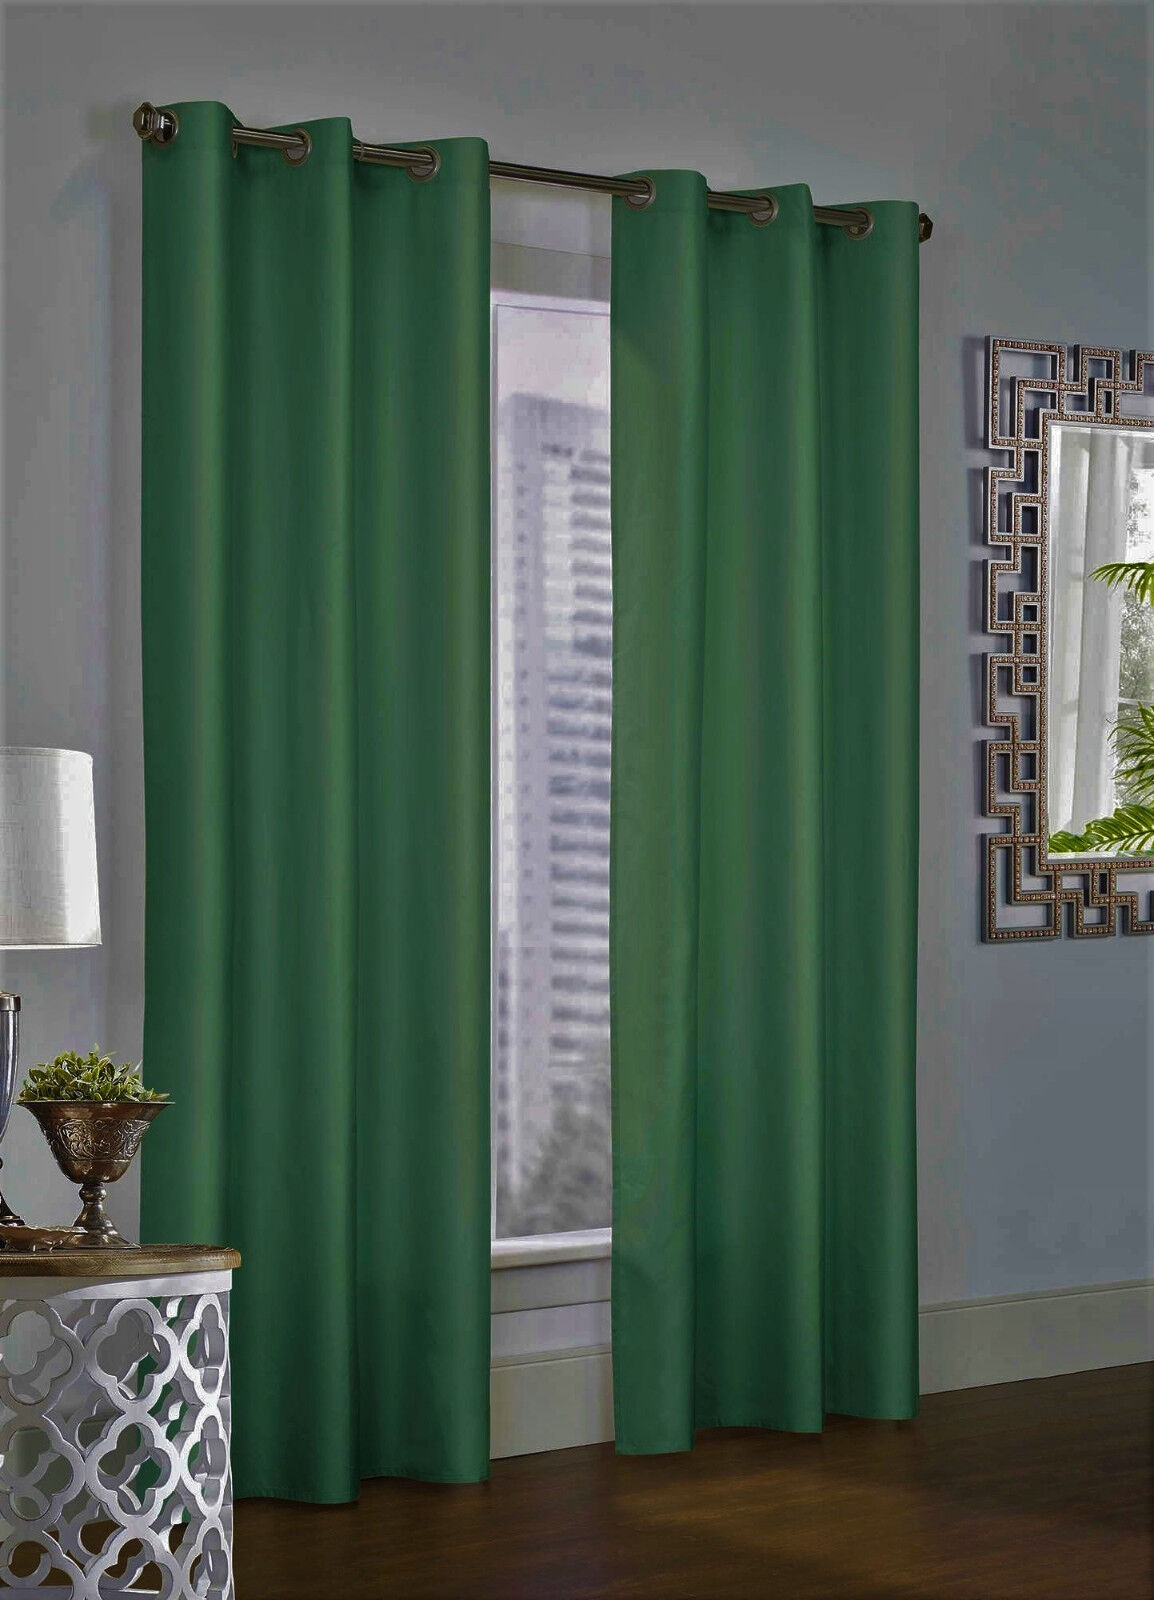 NEW 2 PANEL SOLID LINED THERMAL BLACKOUT GROMMET WINDOW CURTAIN DRAPE NEW JK64